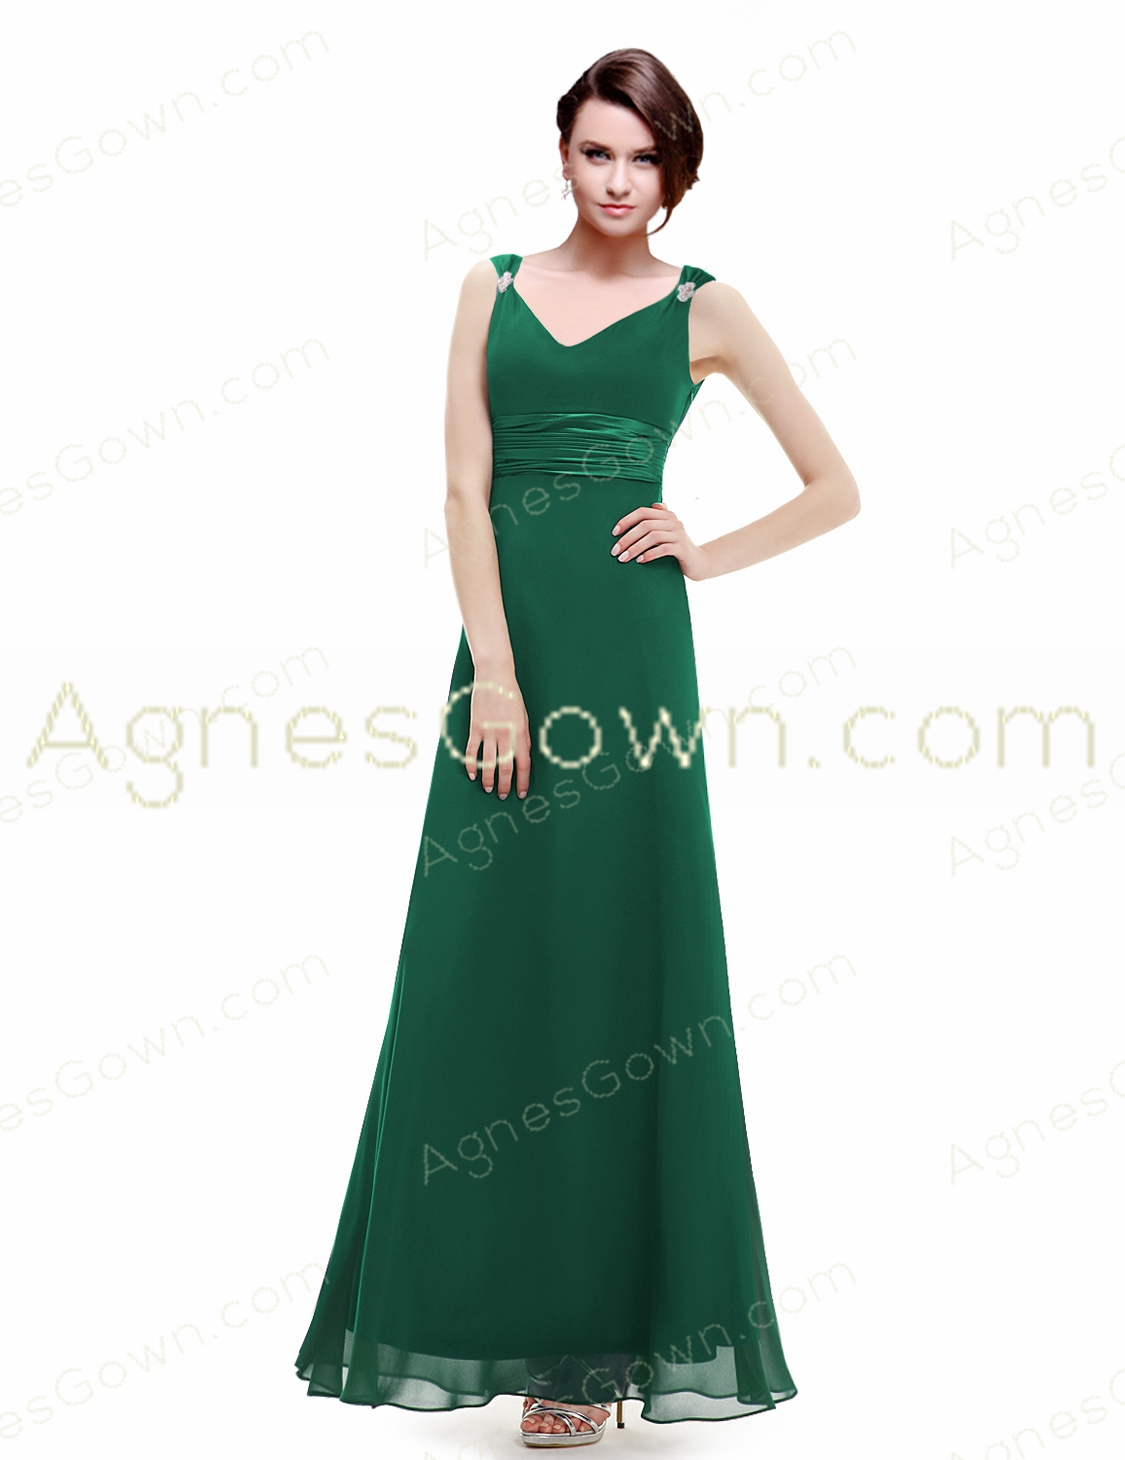 V-Neckline Straps Ankle Length Prom Party Dress